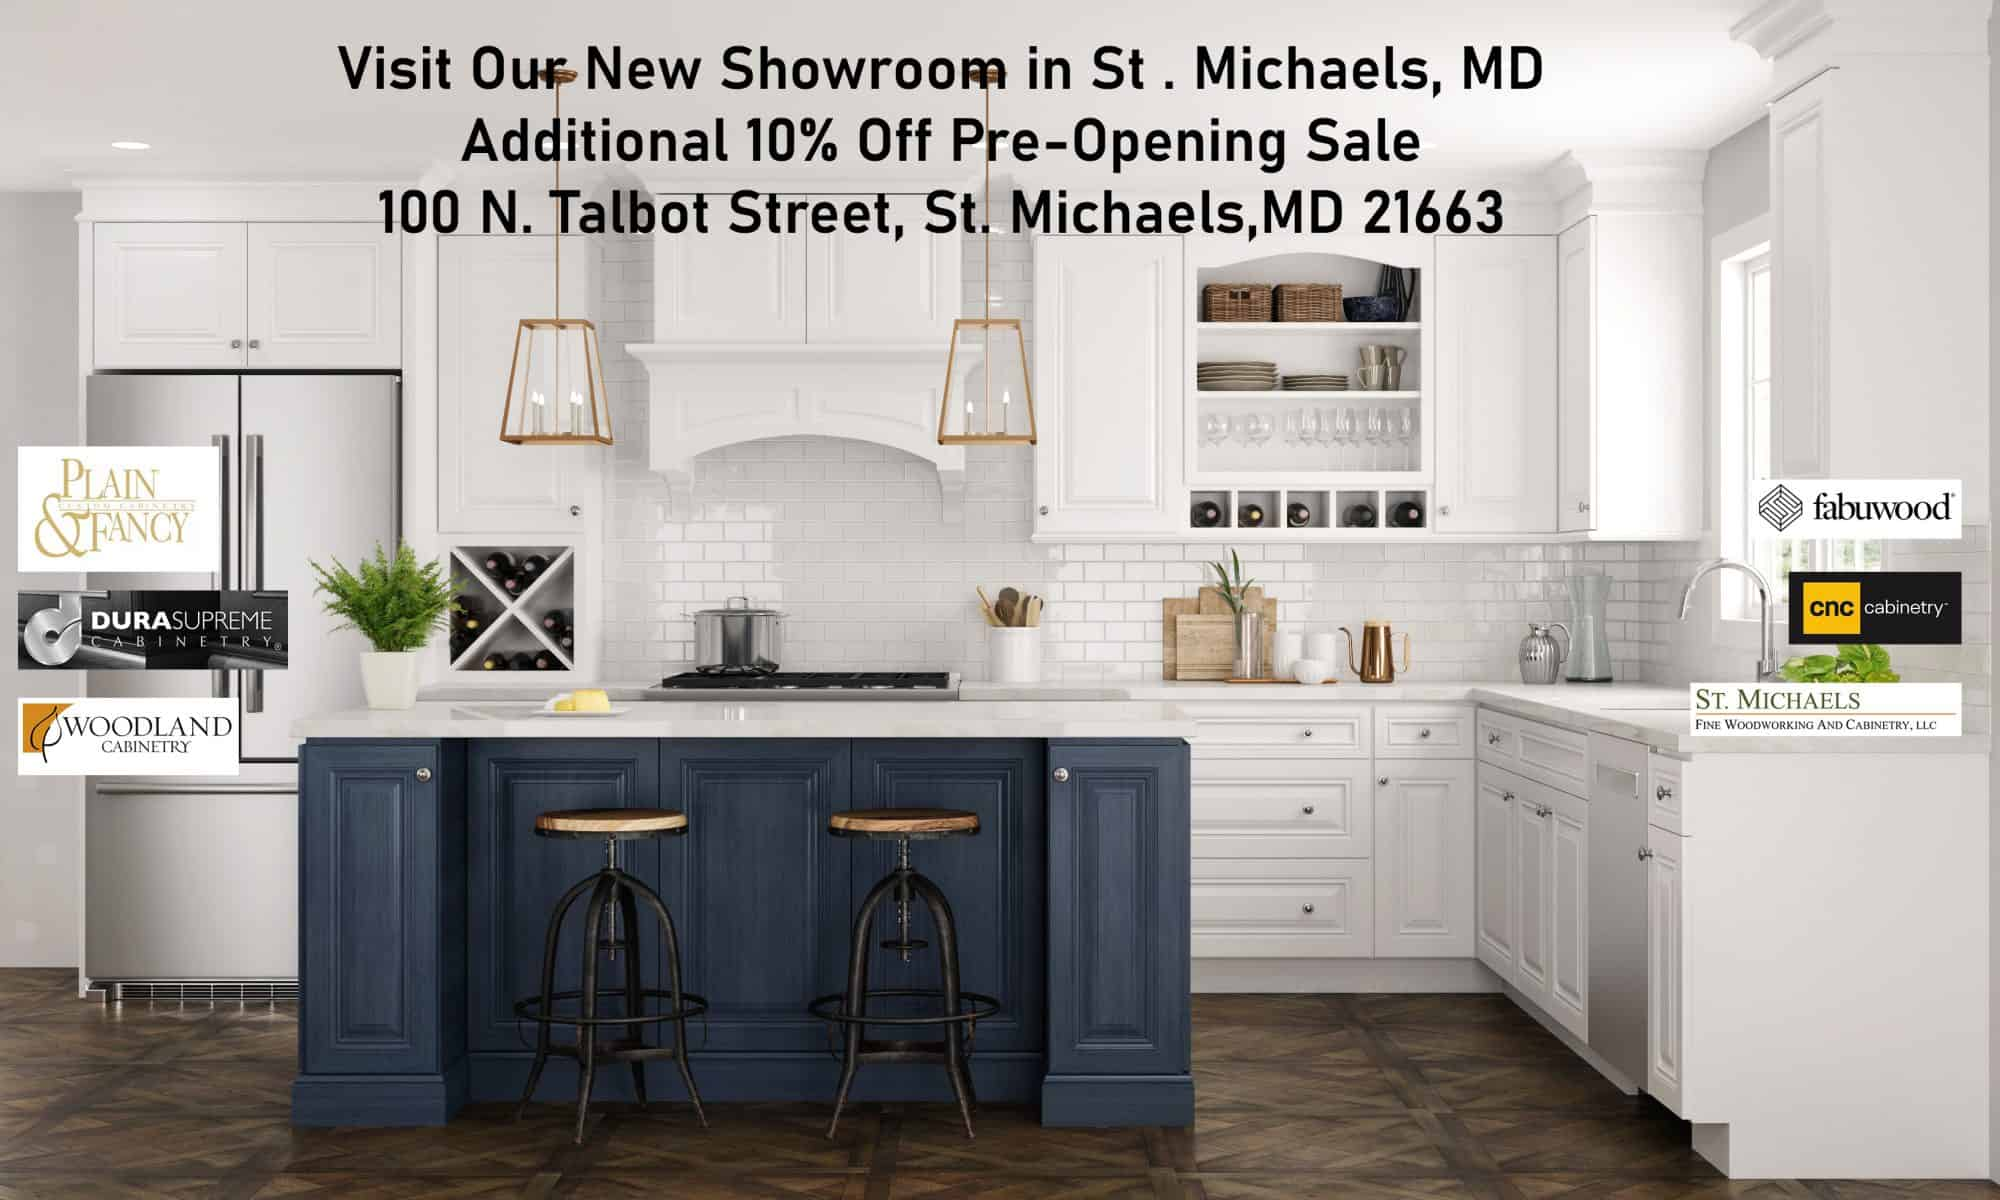 St. Michaels Kitchen and Bath